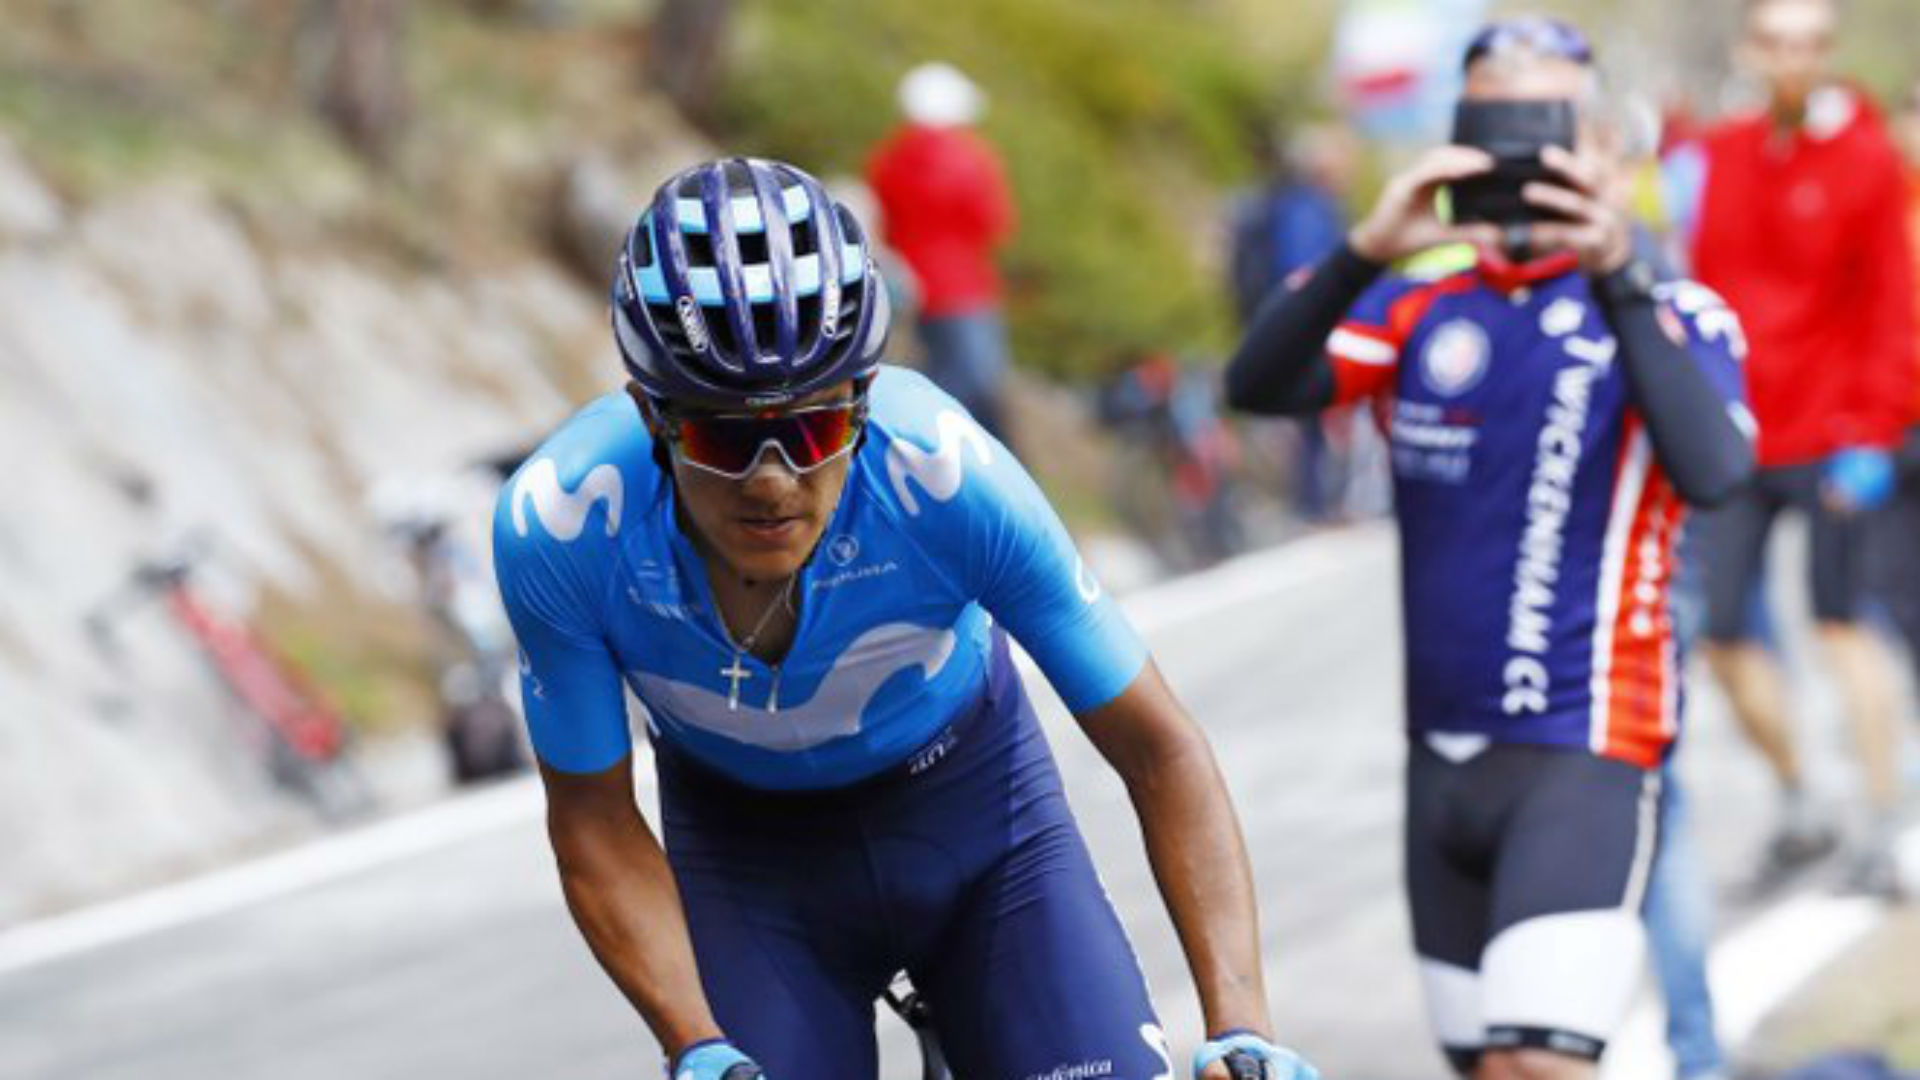 Richard Carapaz will not start the final Grand Tour race of the year due to injuries sustained in a crash in the Netherlands.